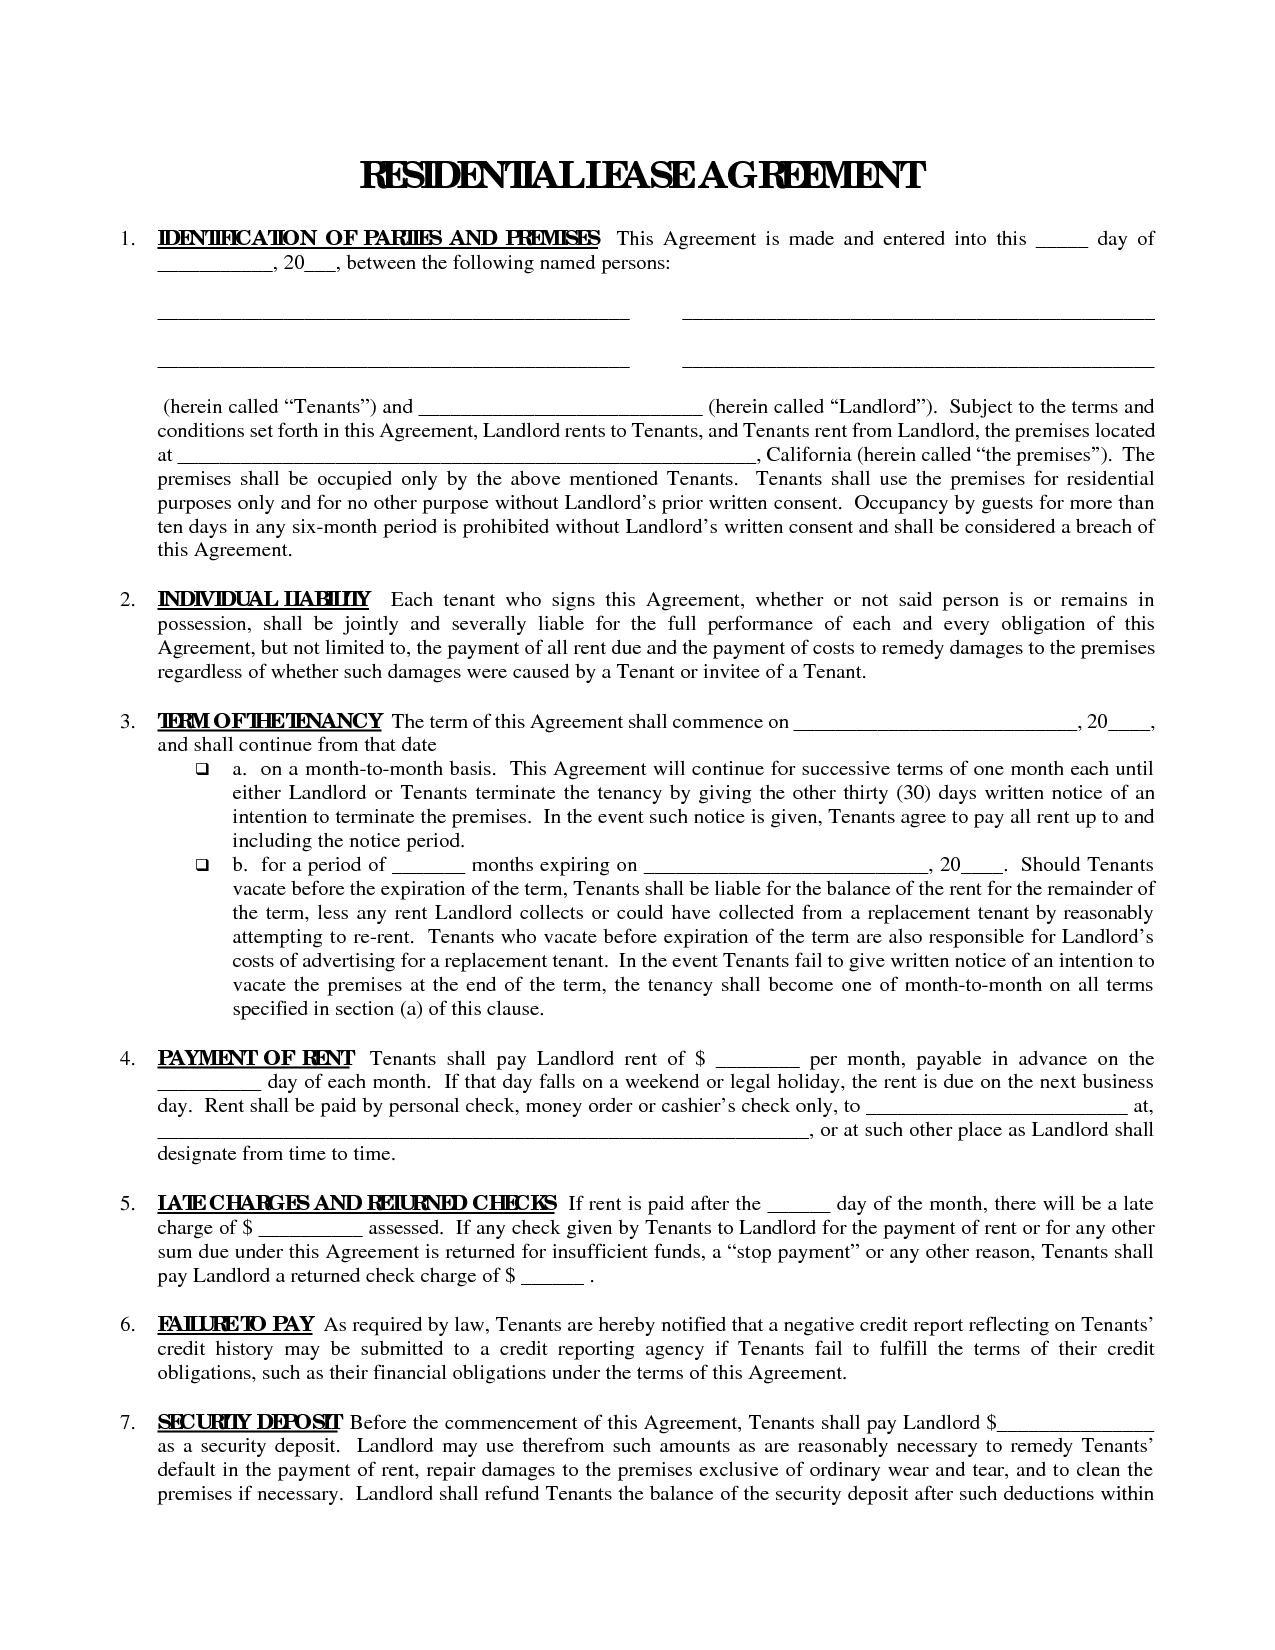 Printable Residential Free House Lease Agreement   Residential Lease - Free Printable House Rental Forms